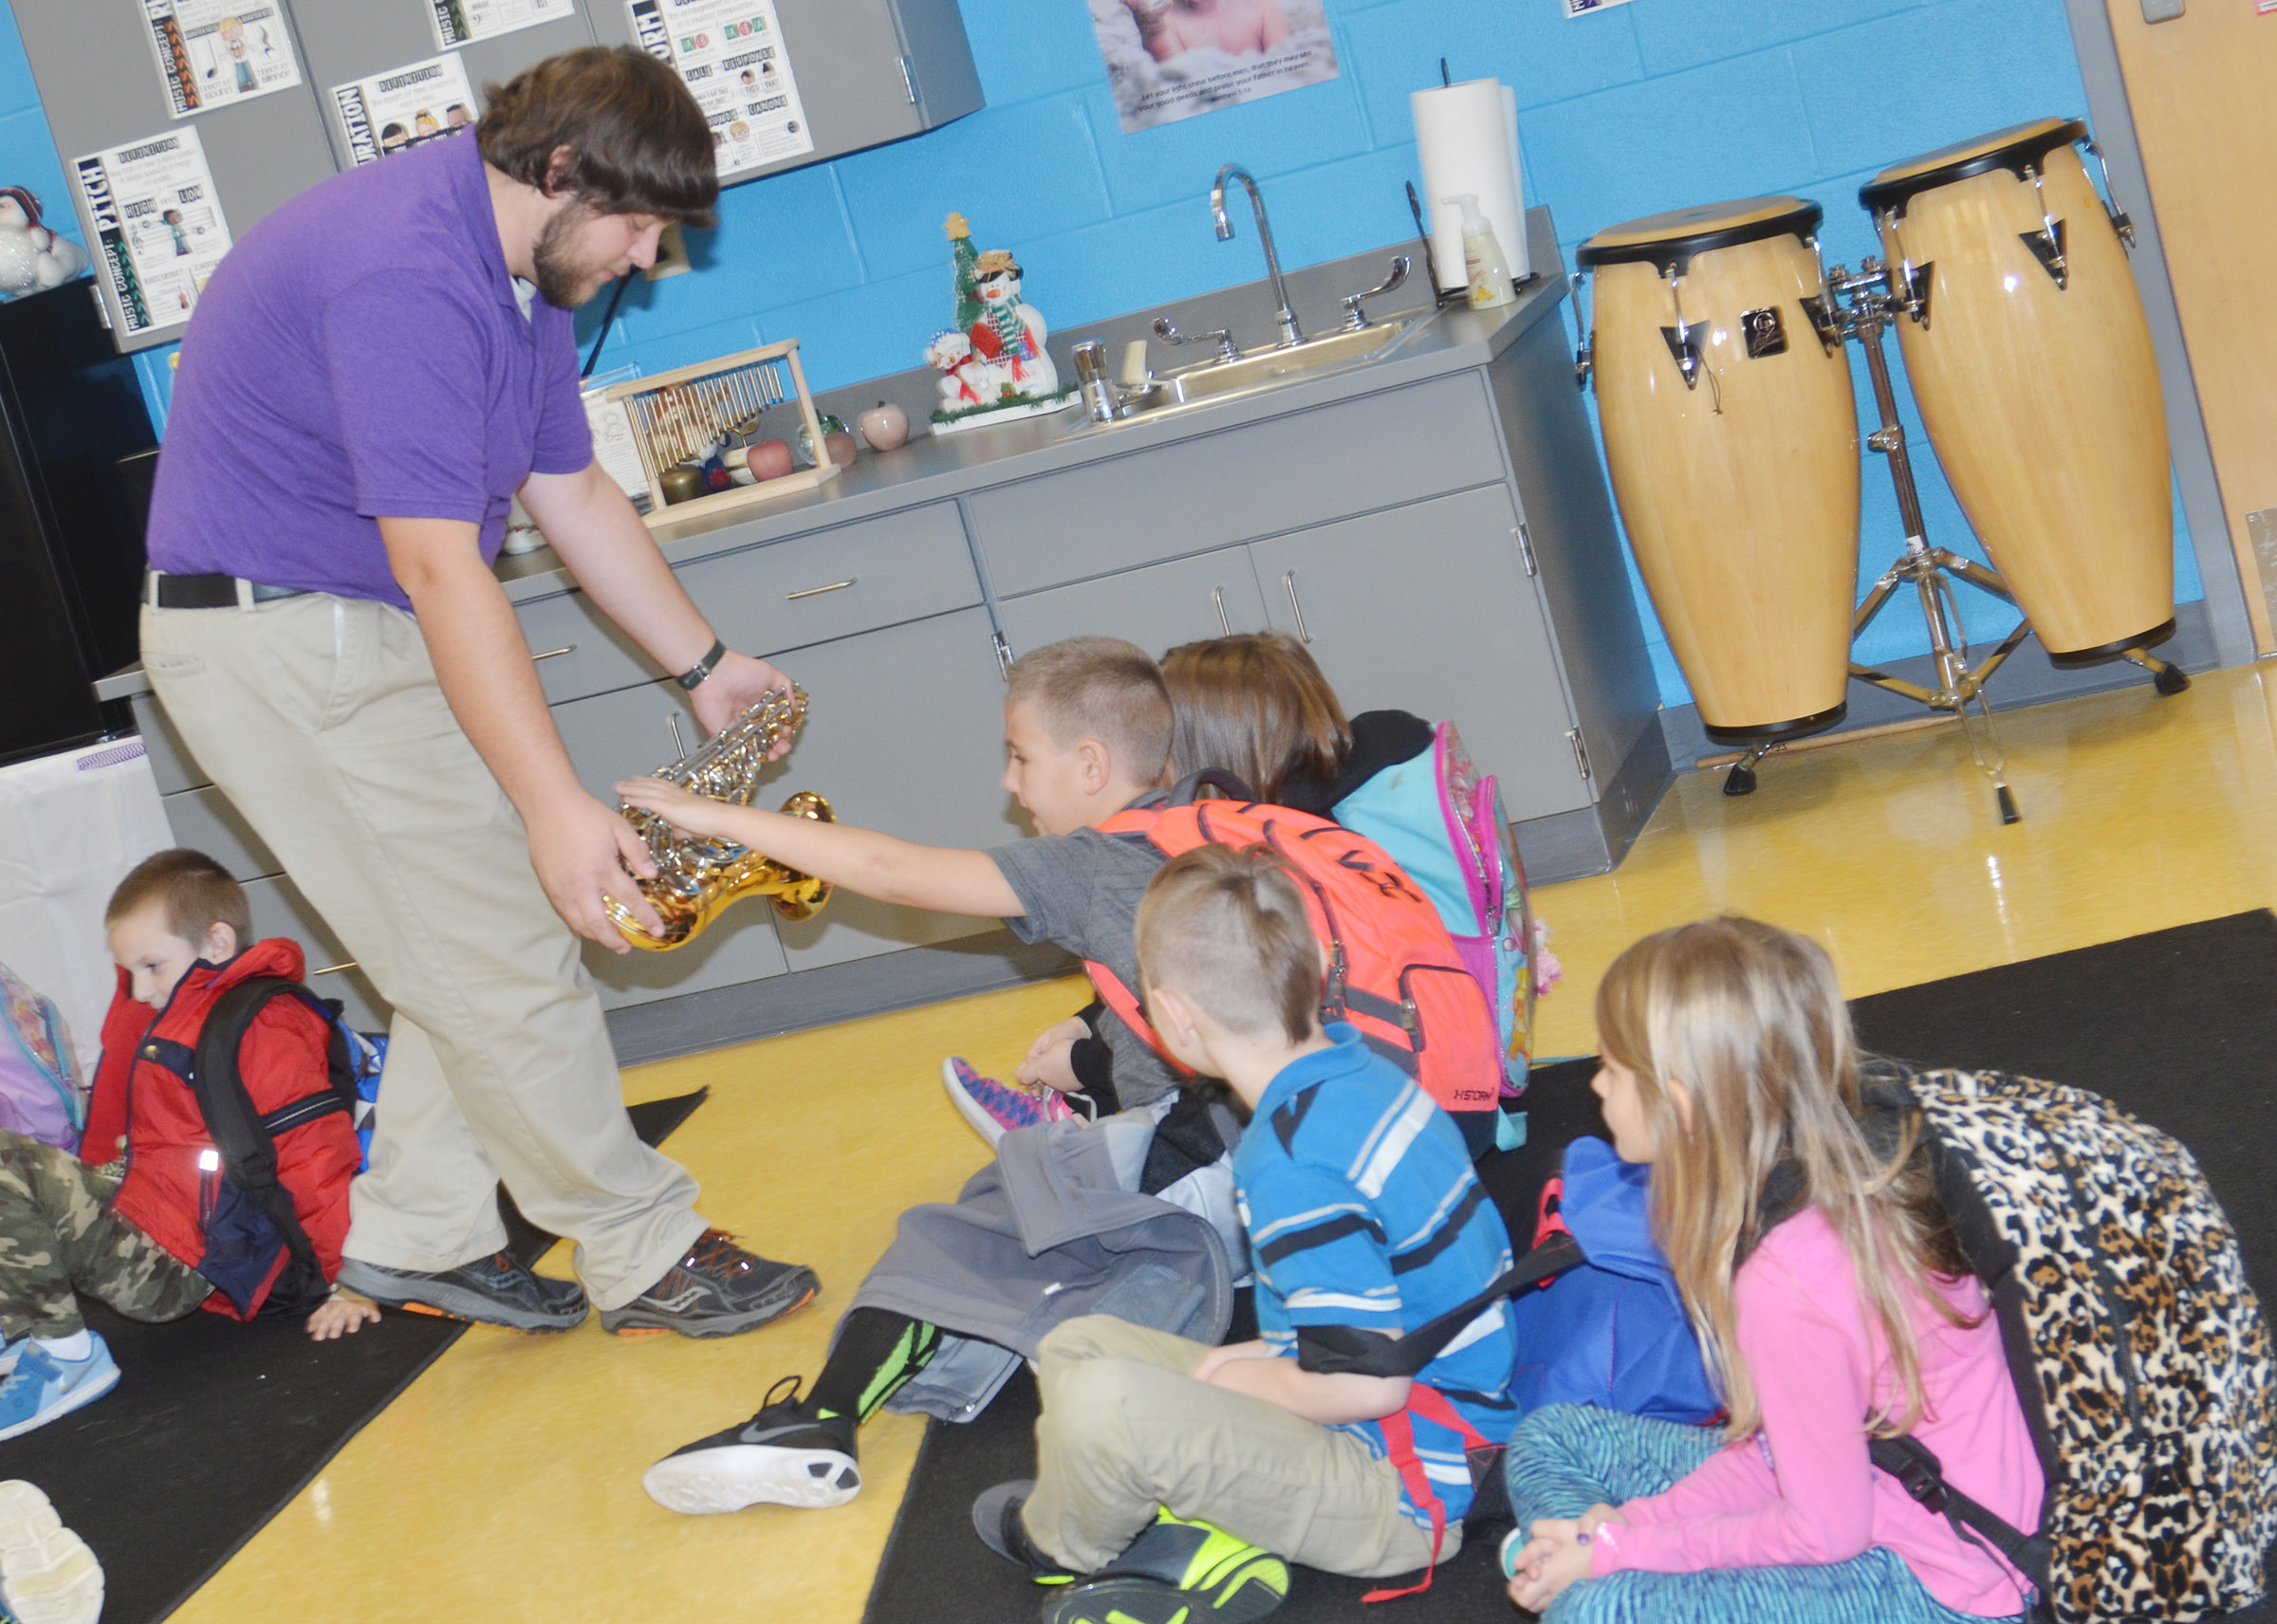 Campbellsville University education student Scott Caffee shows CES first-graders how pressing the keys on a tenor saxophone can change the note played.